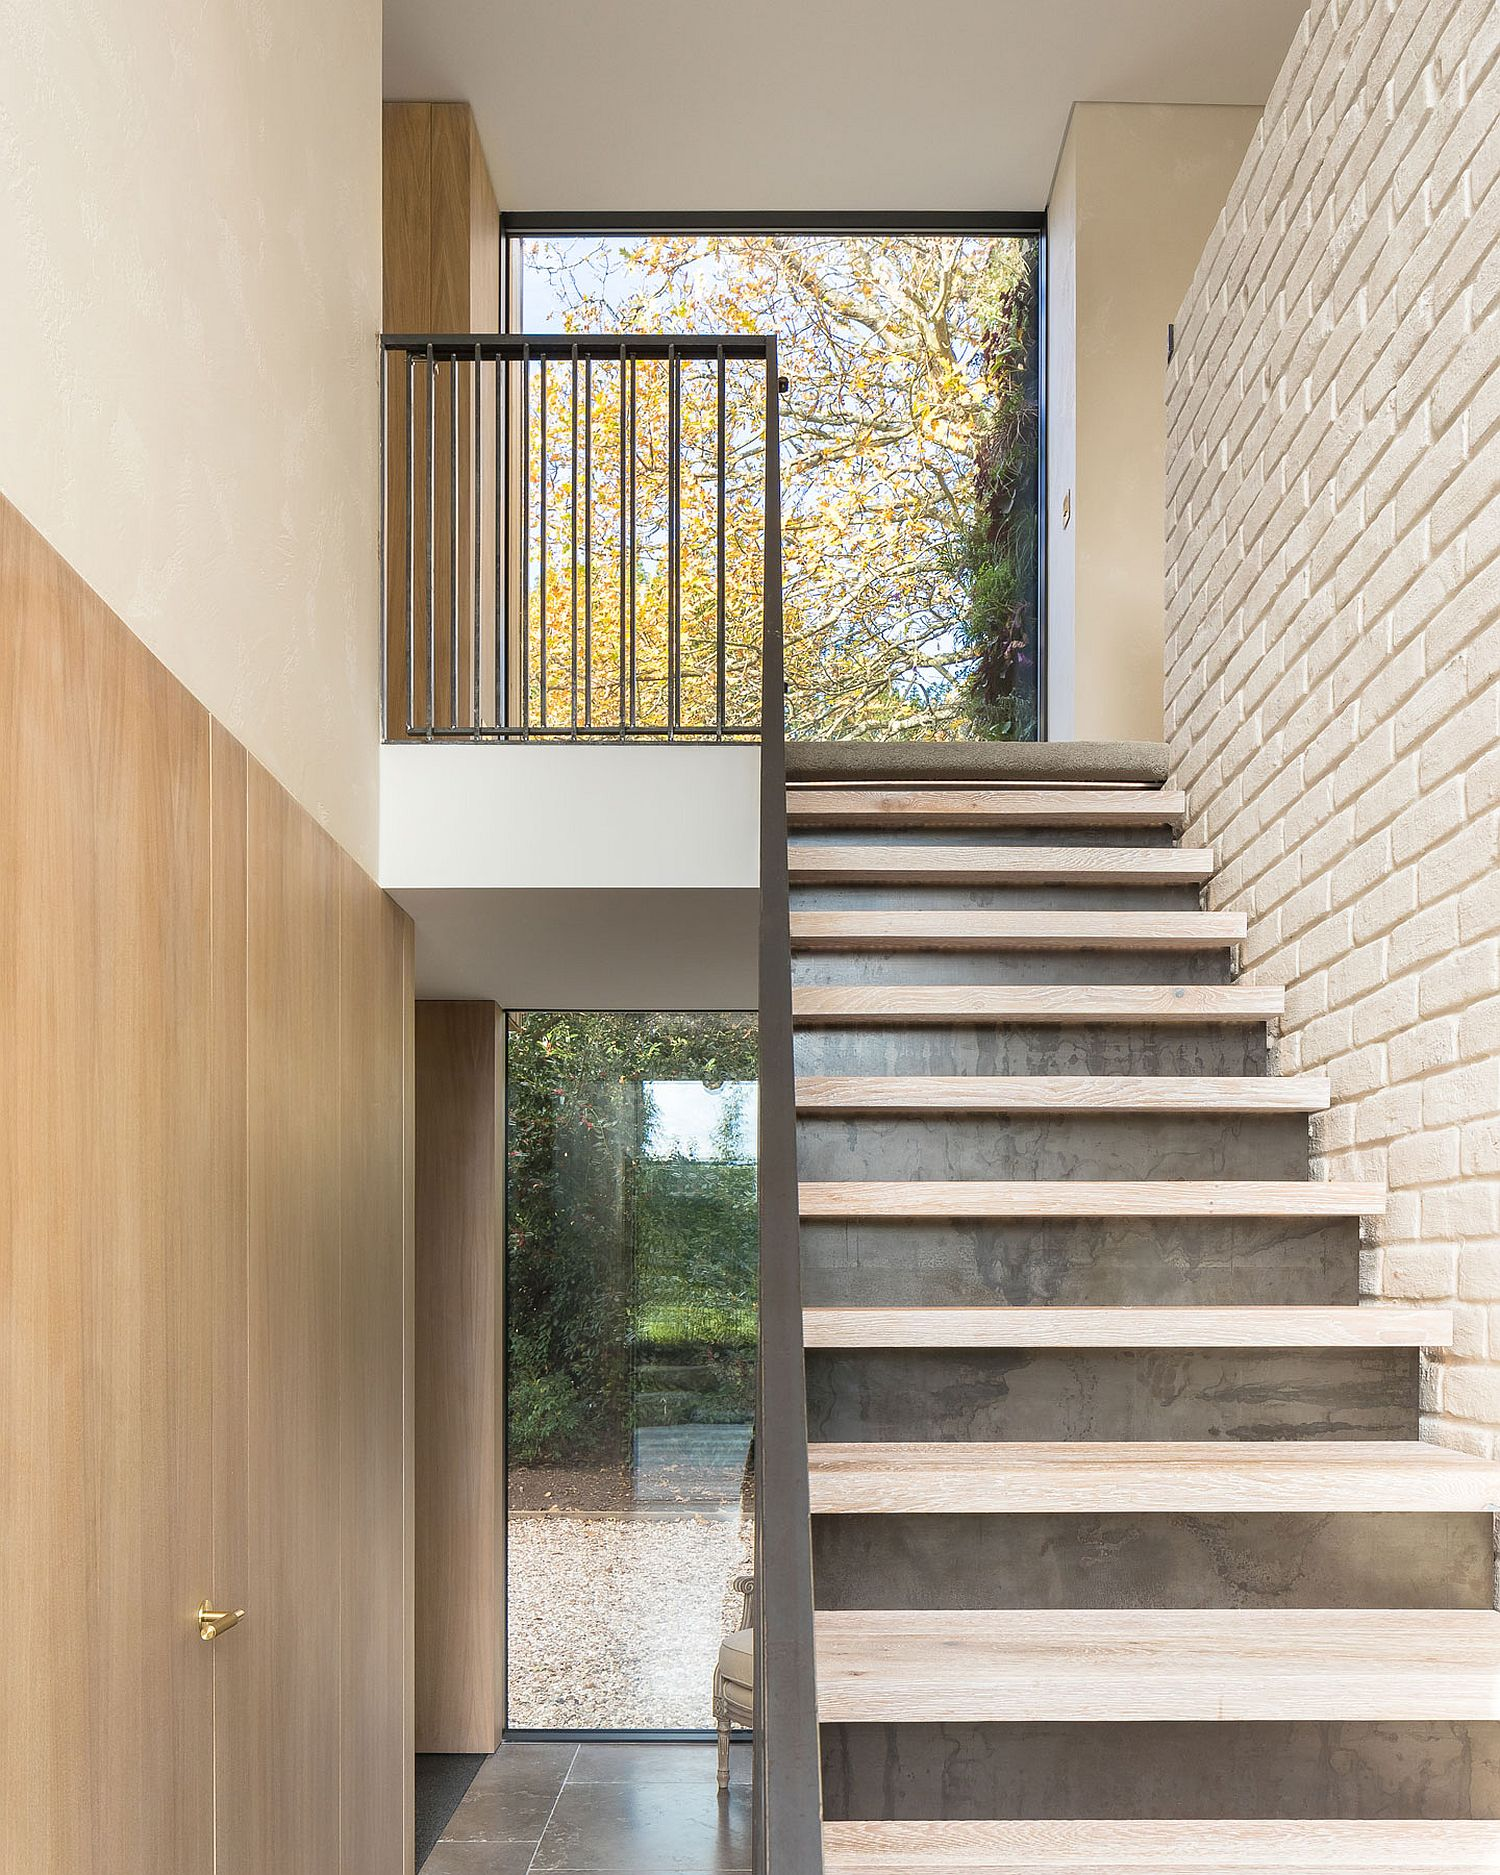 Simple and modern staircase design focuses on efficiency